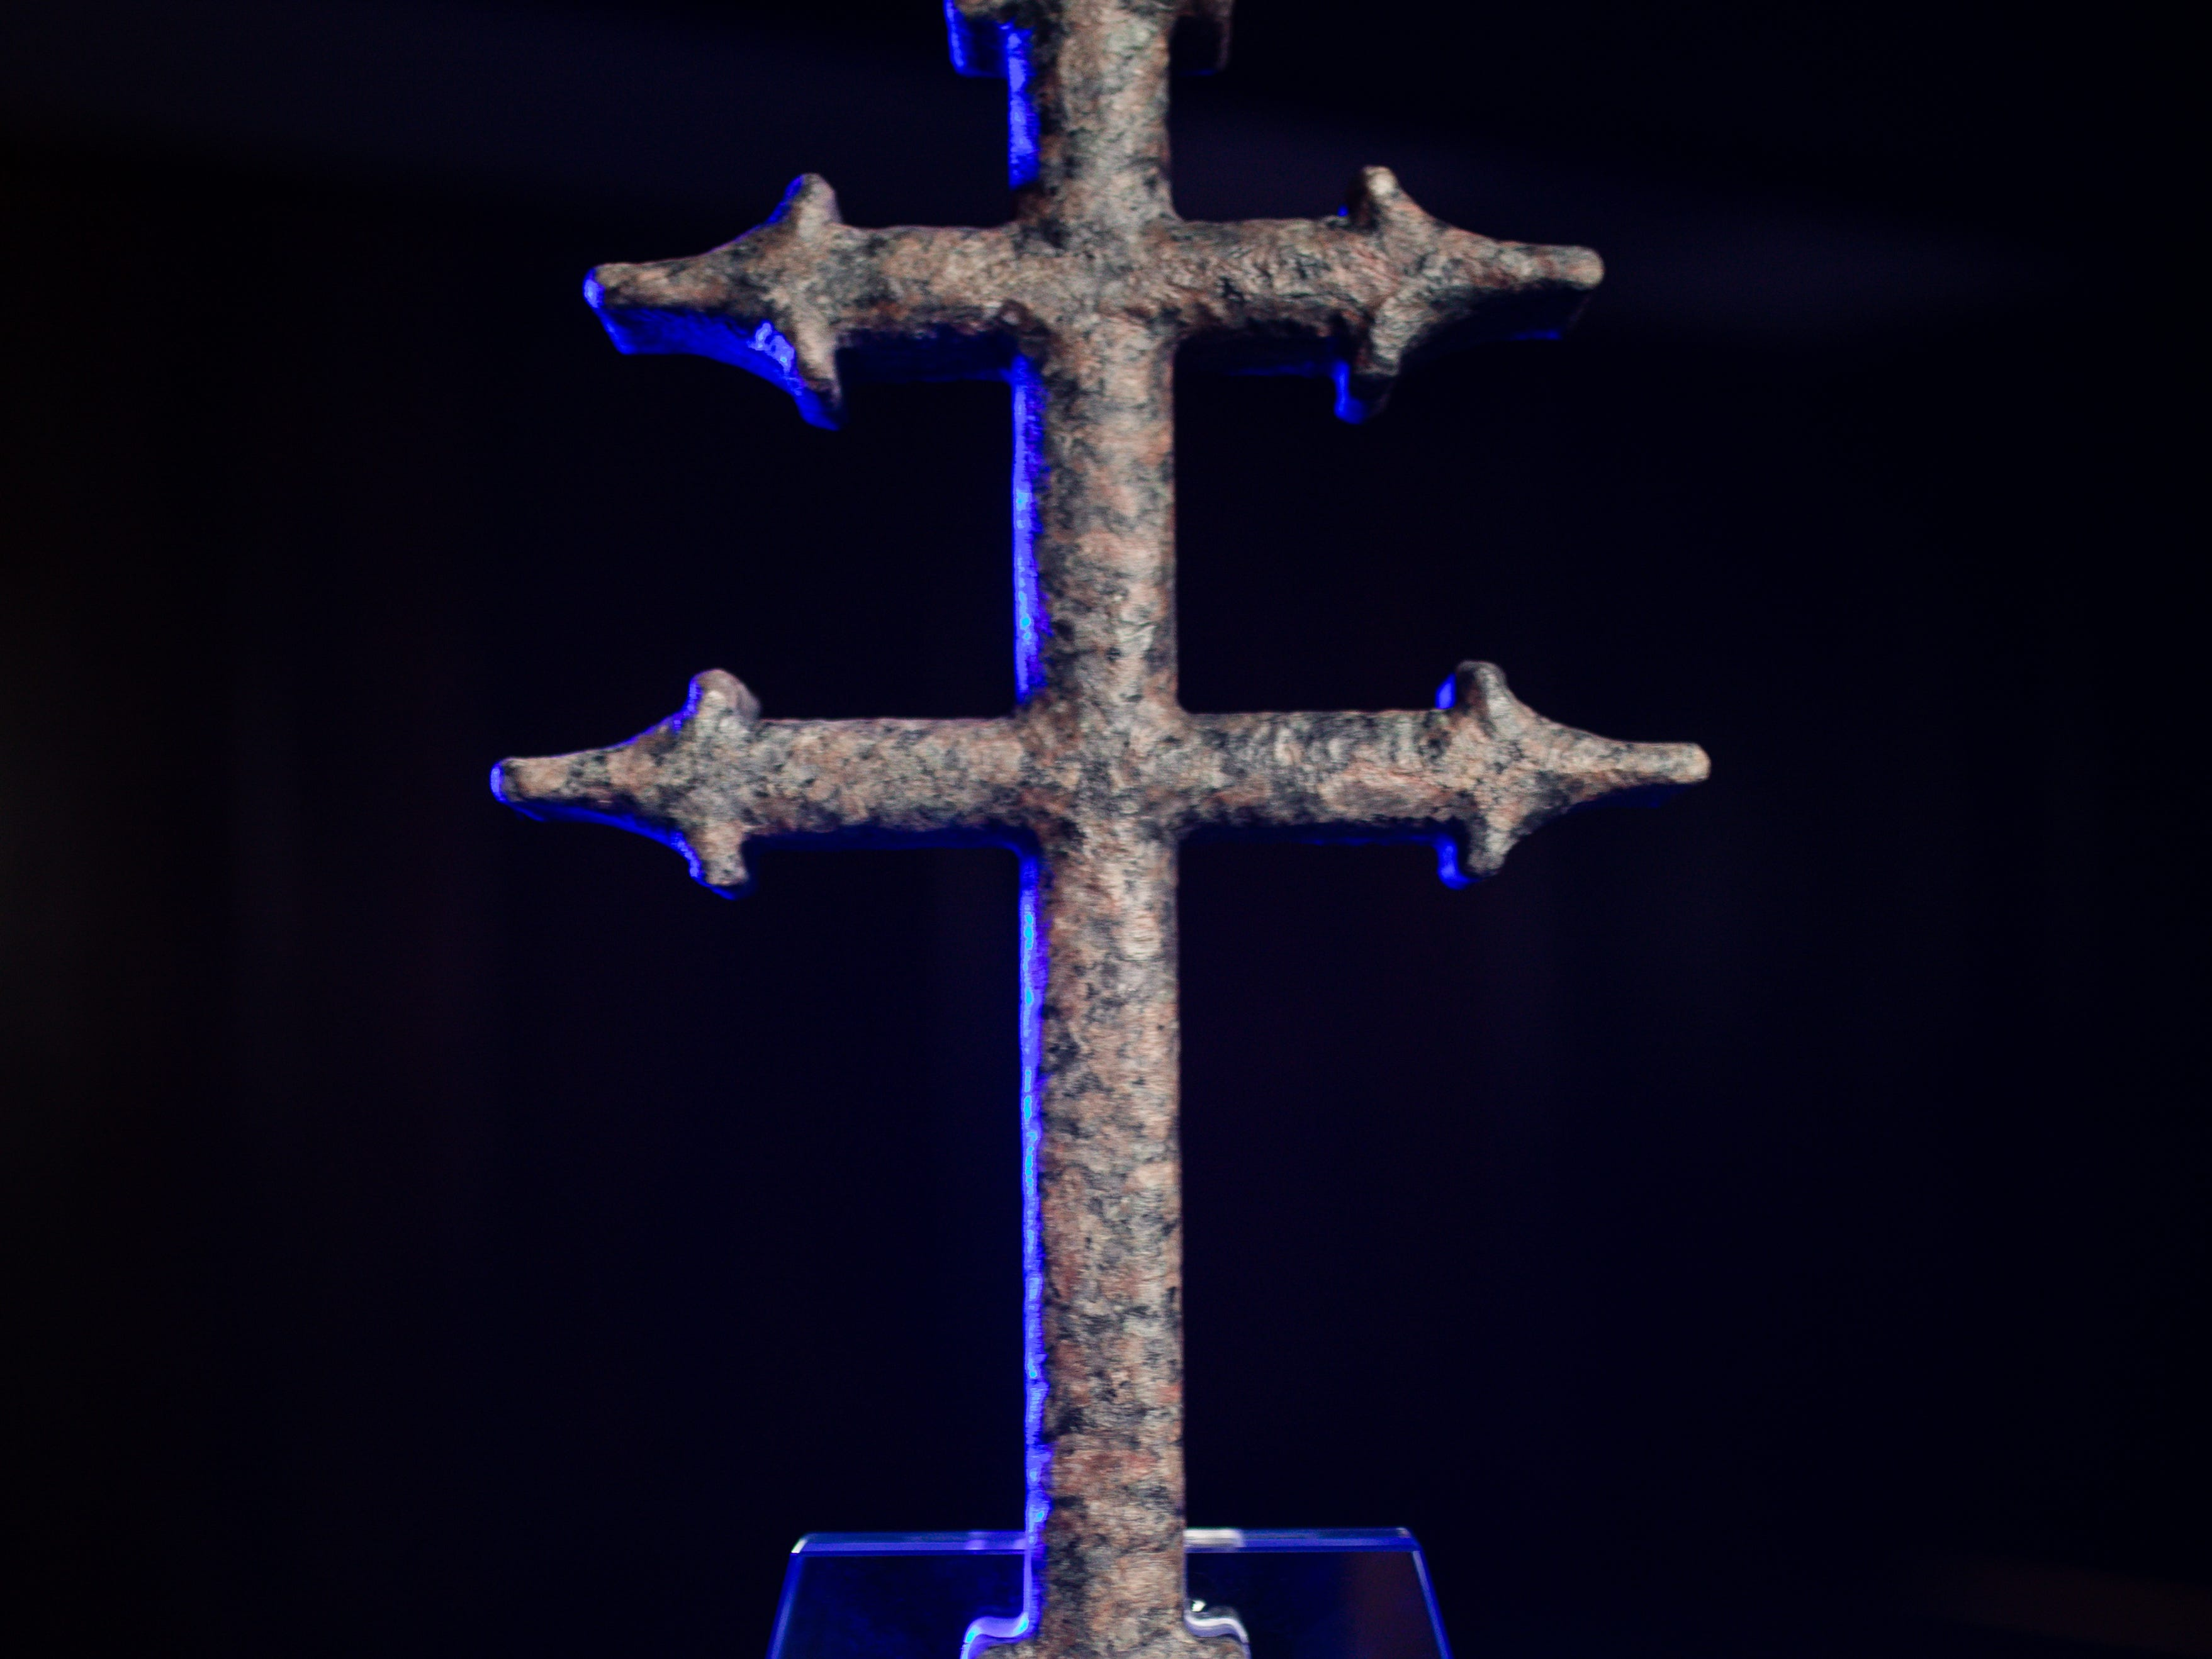 The Lorraine Cross Award is used in the Sanford Health logo and to symbolize innovation in health care.